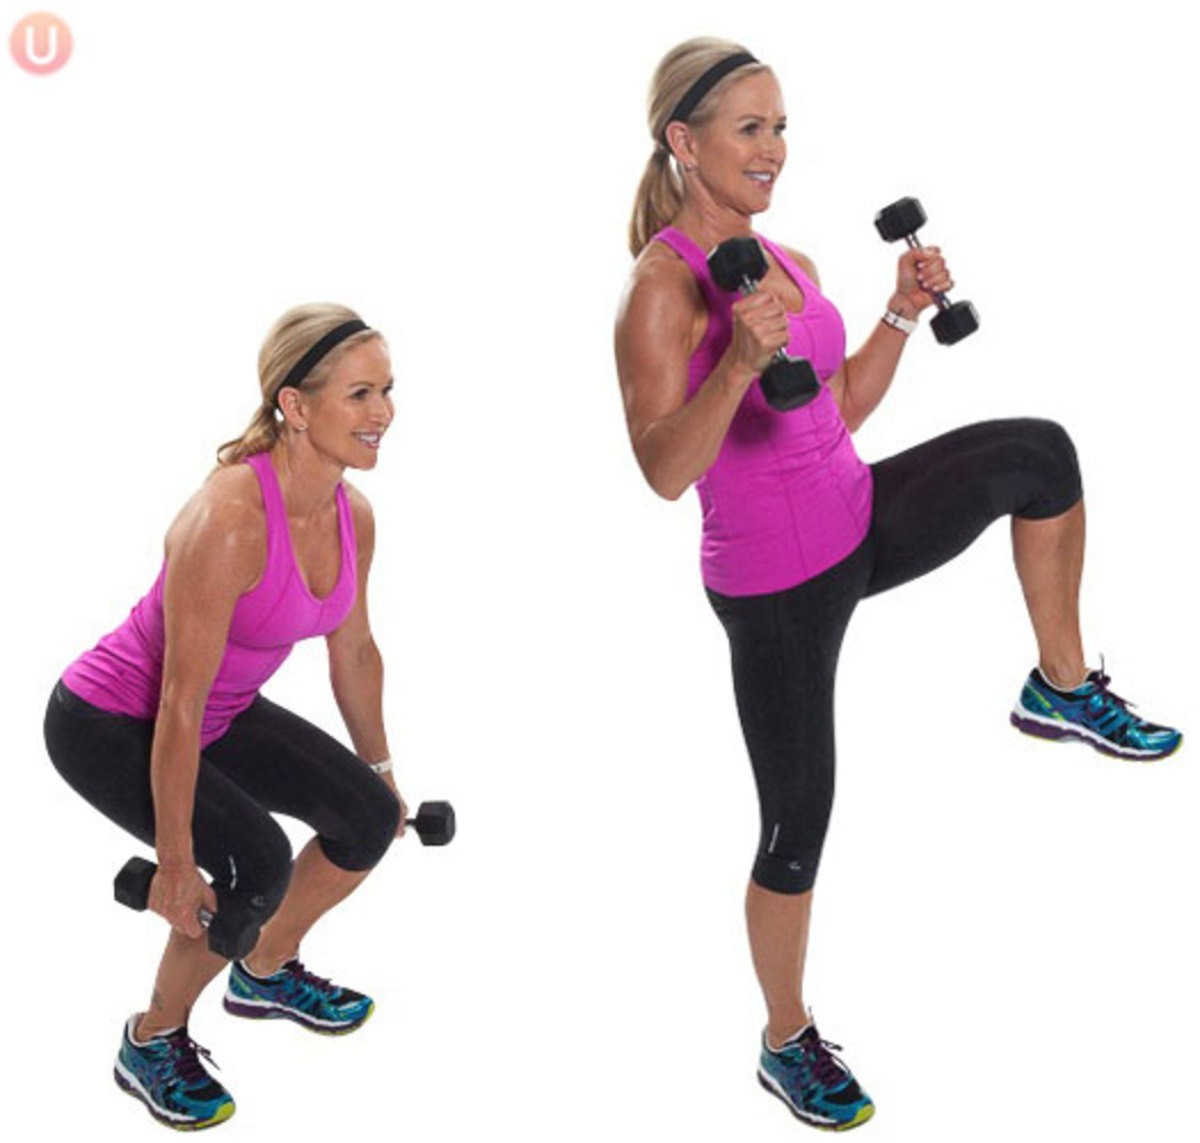 This girl does it with a bicep curl, but it is not necessary!